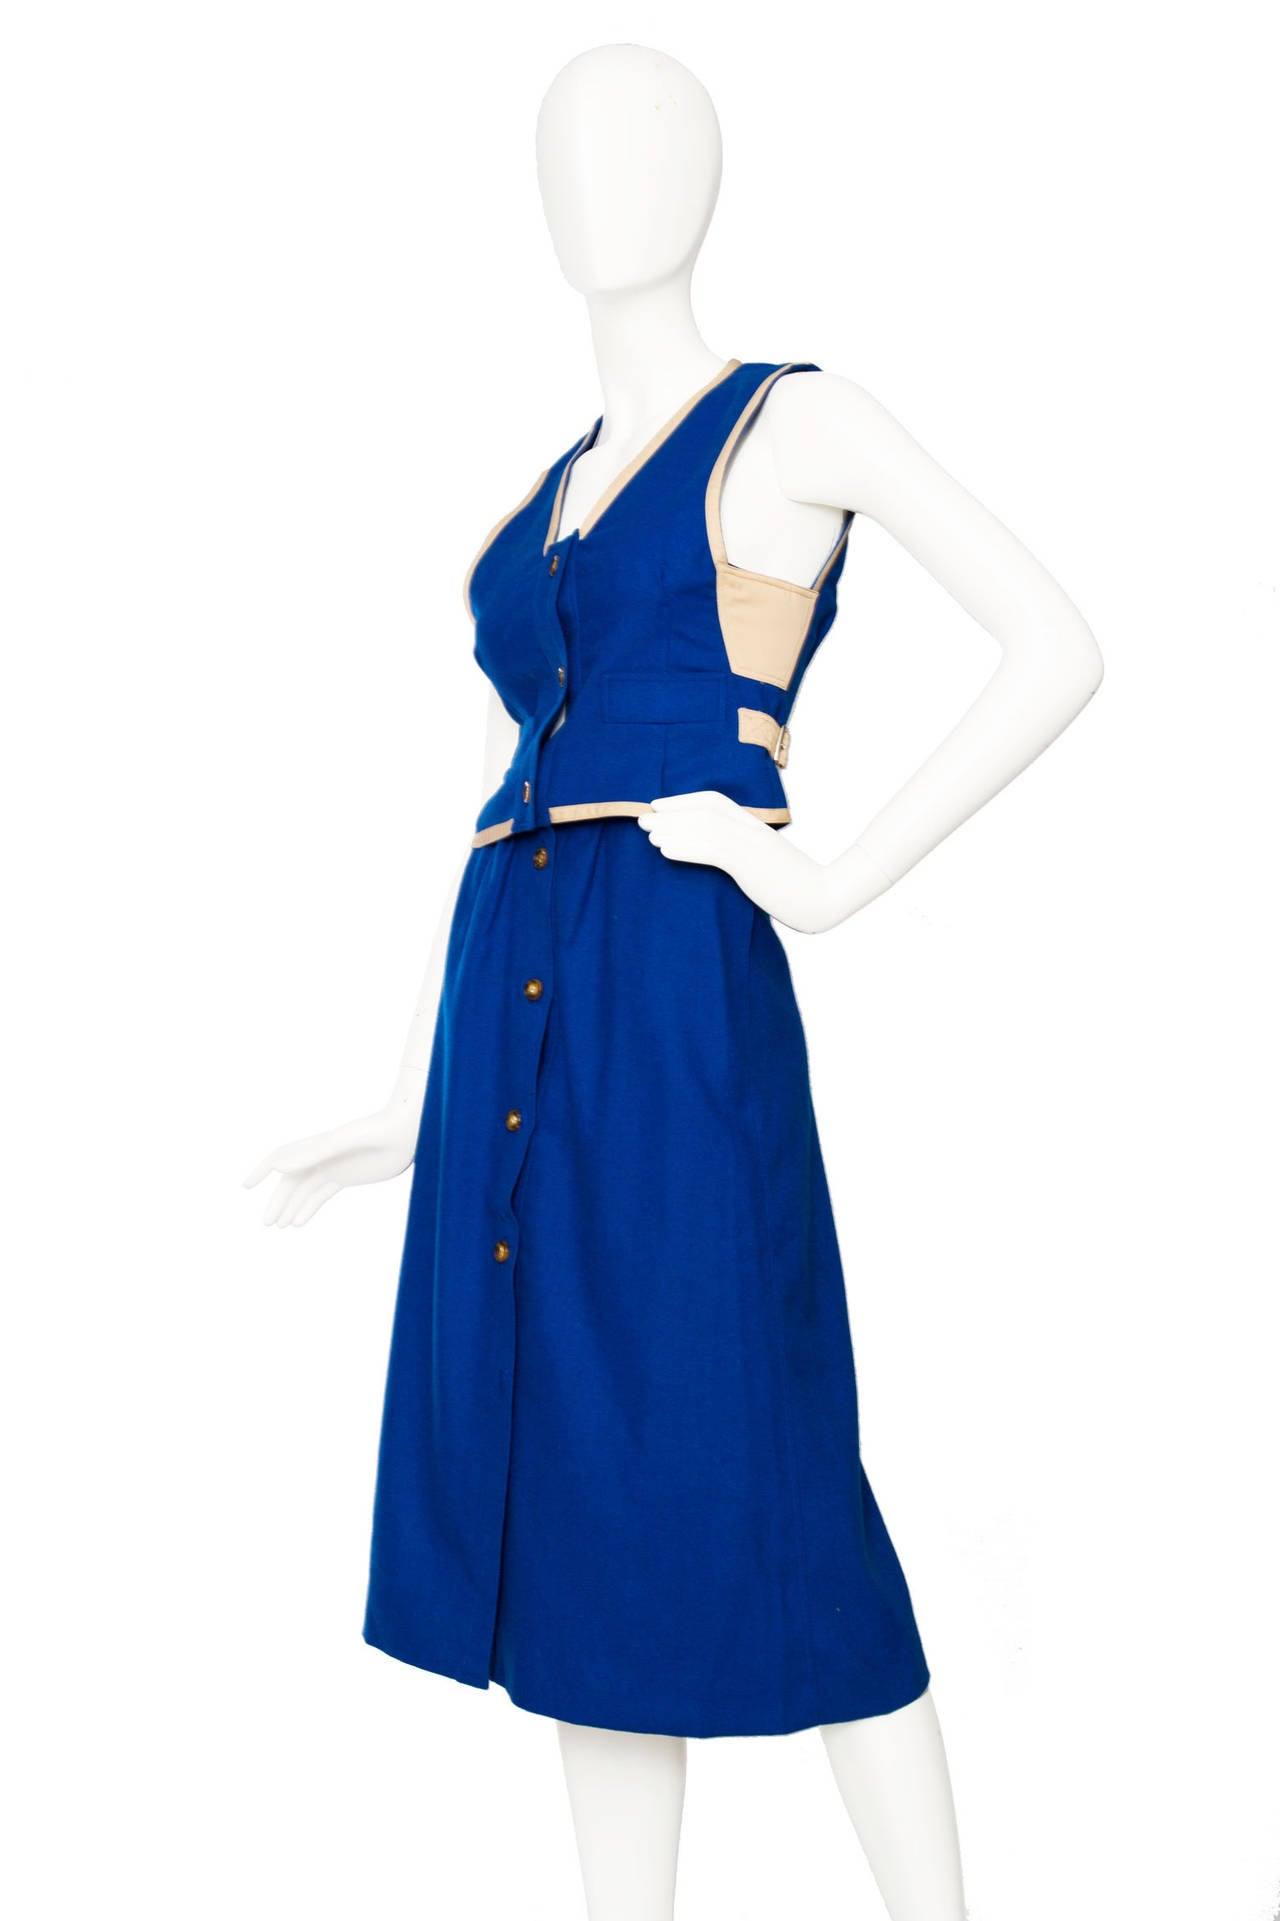 A 1960s Courrèges electric blue a-line wool skirt and vest ensemble. The top have a delicate off-white leather trimming all round, dart inserts under the arms and a leather buckle detail is framing the waistline. Both the top and bottom have an